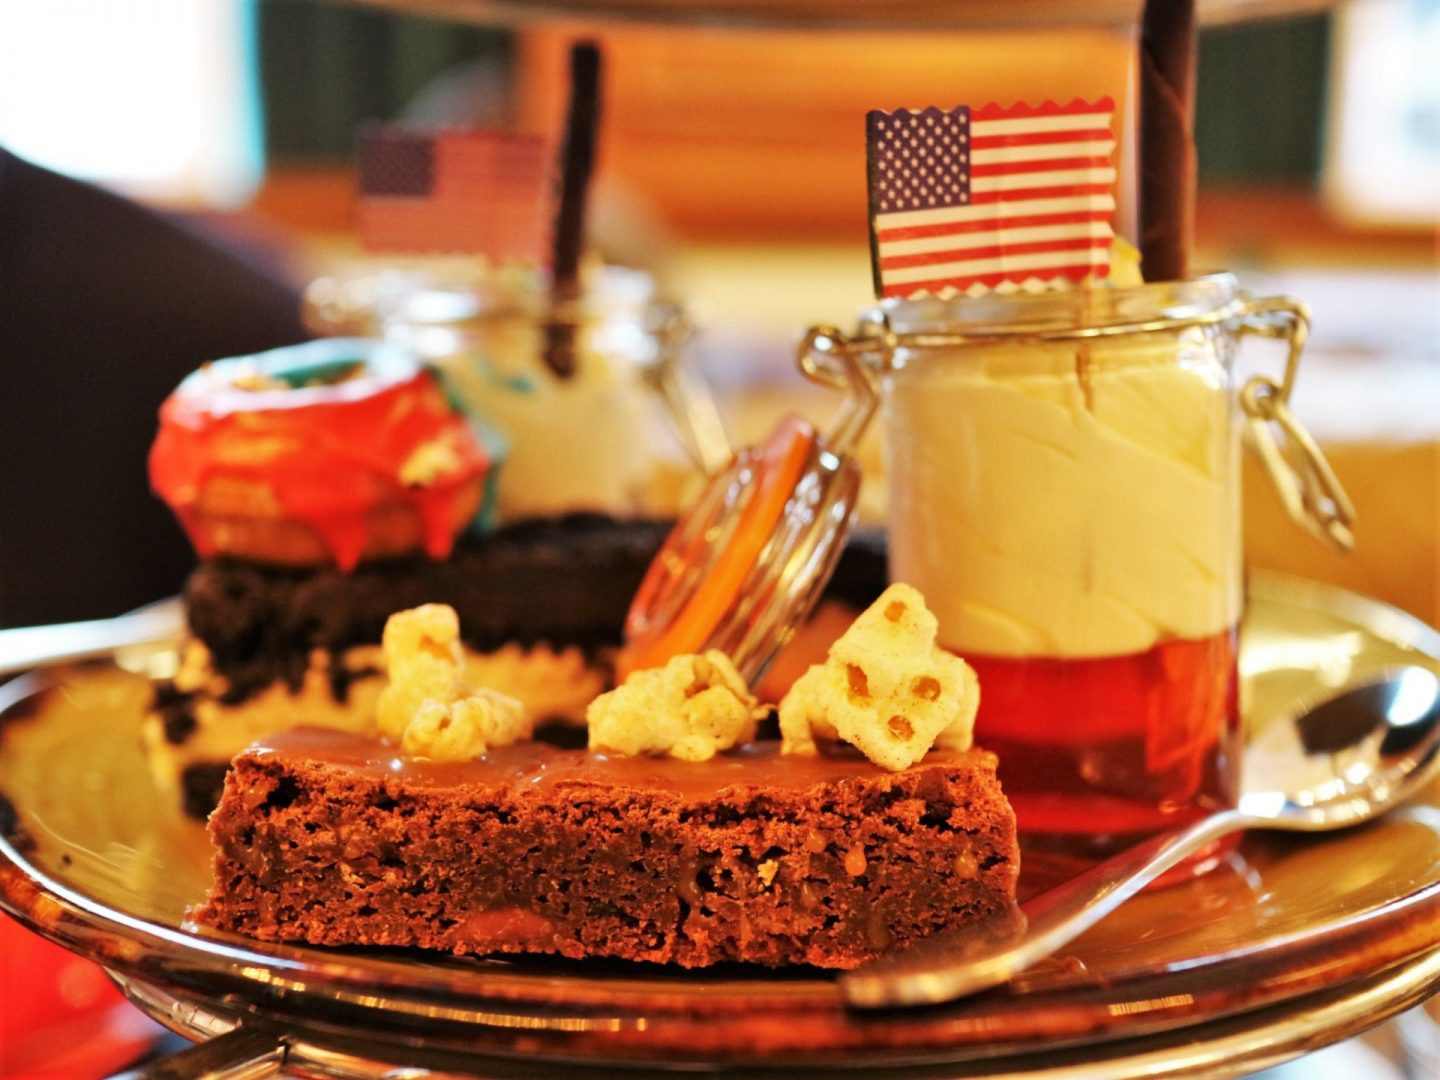 American Style Afternoon Tea at NYL, Liverpool